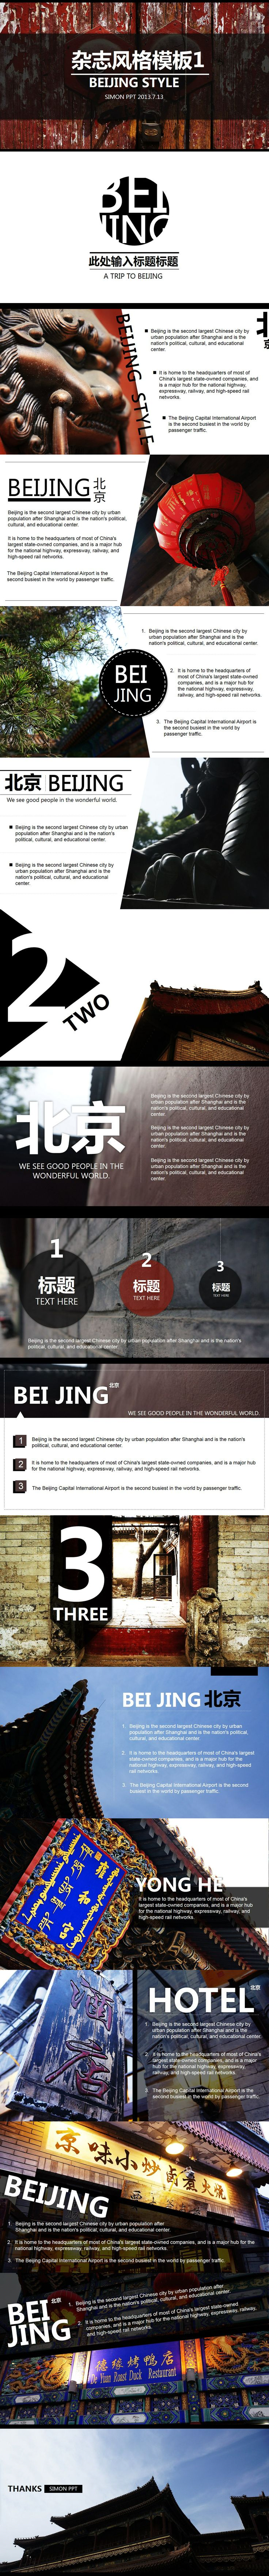 PPT Template Designed by Simon. Download:http://www.pptstore.net/shangwu_ppt/6207.html